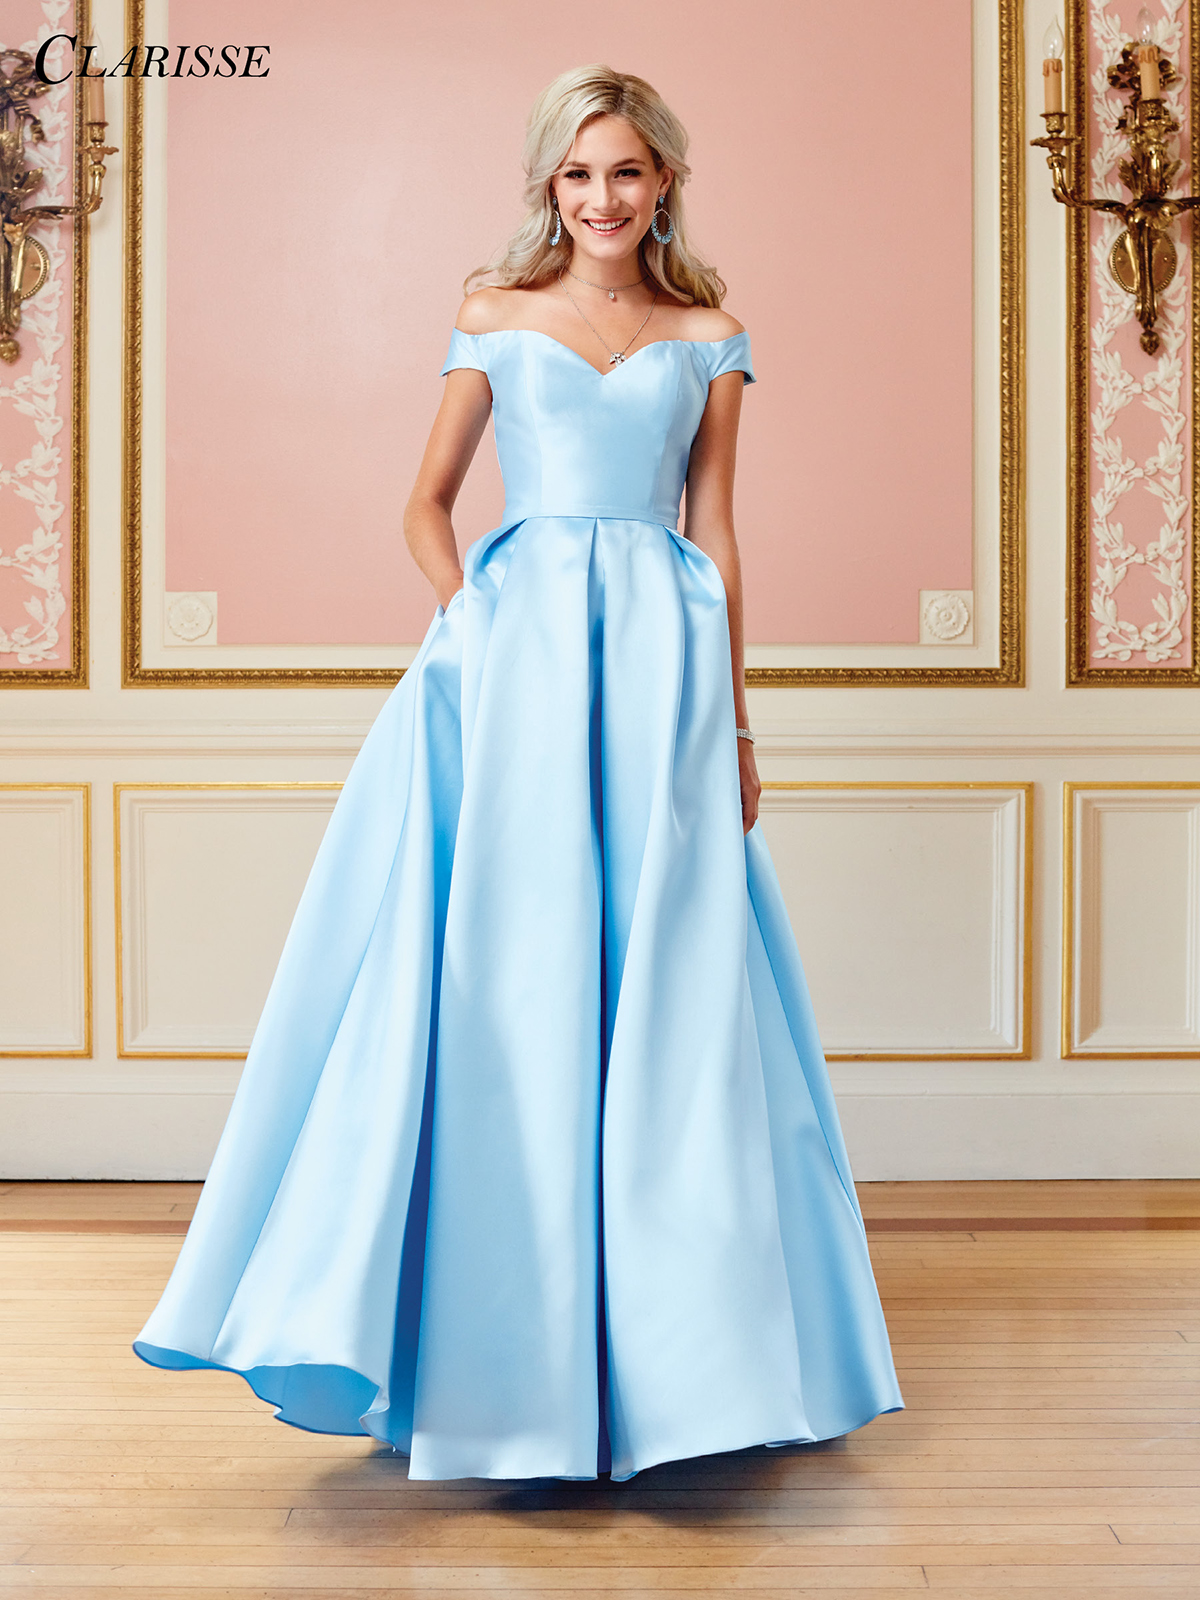 2018 Prom Dress Clarisse 3442 | Promgirl.net